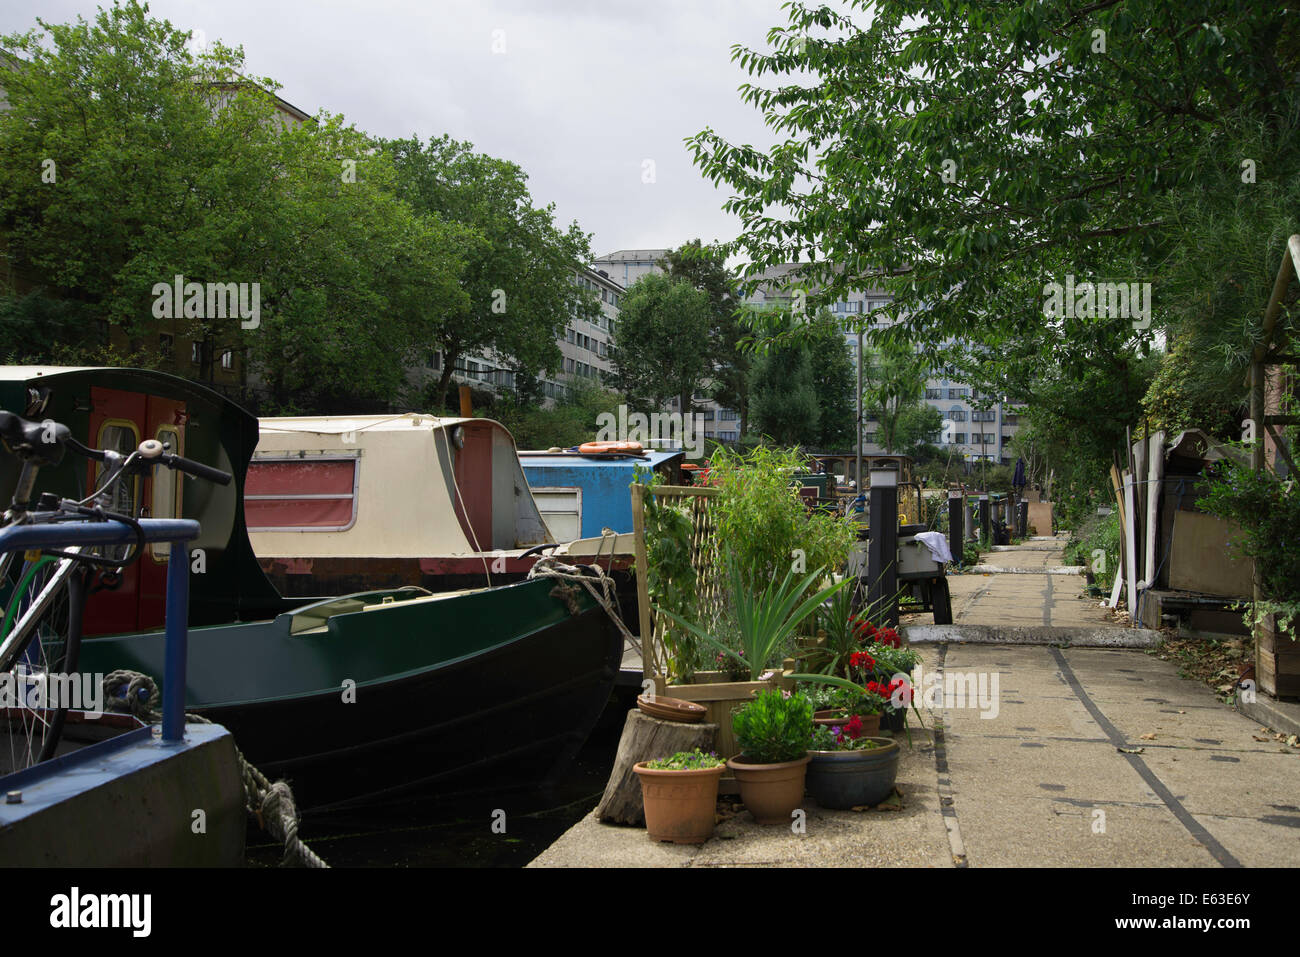 Regents Canal towpath with houseboats plants and overhanging trees - Stock Image